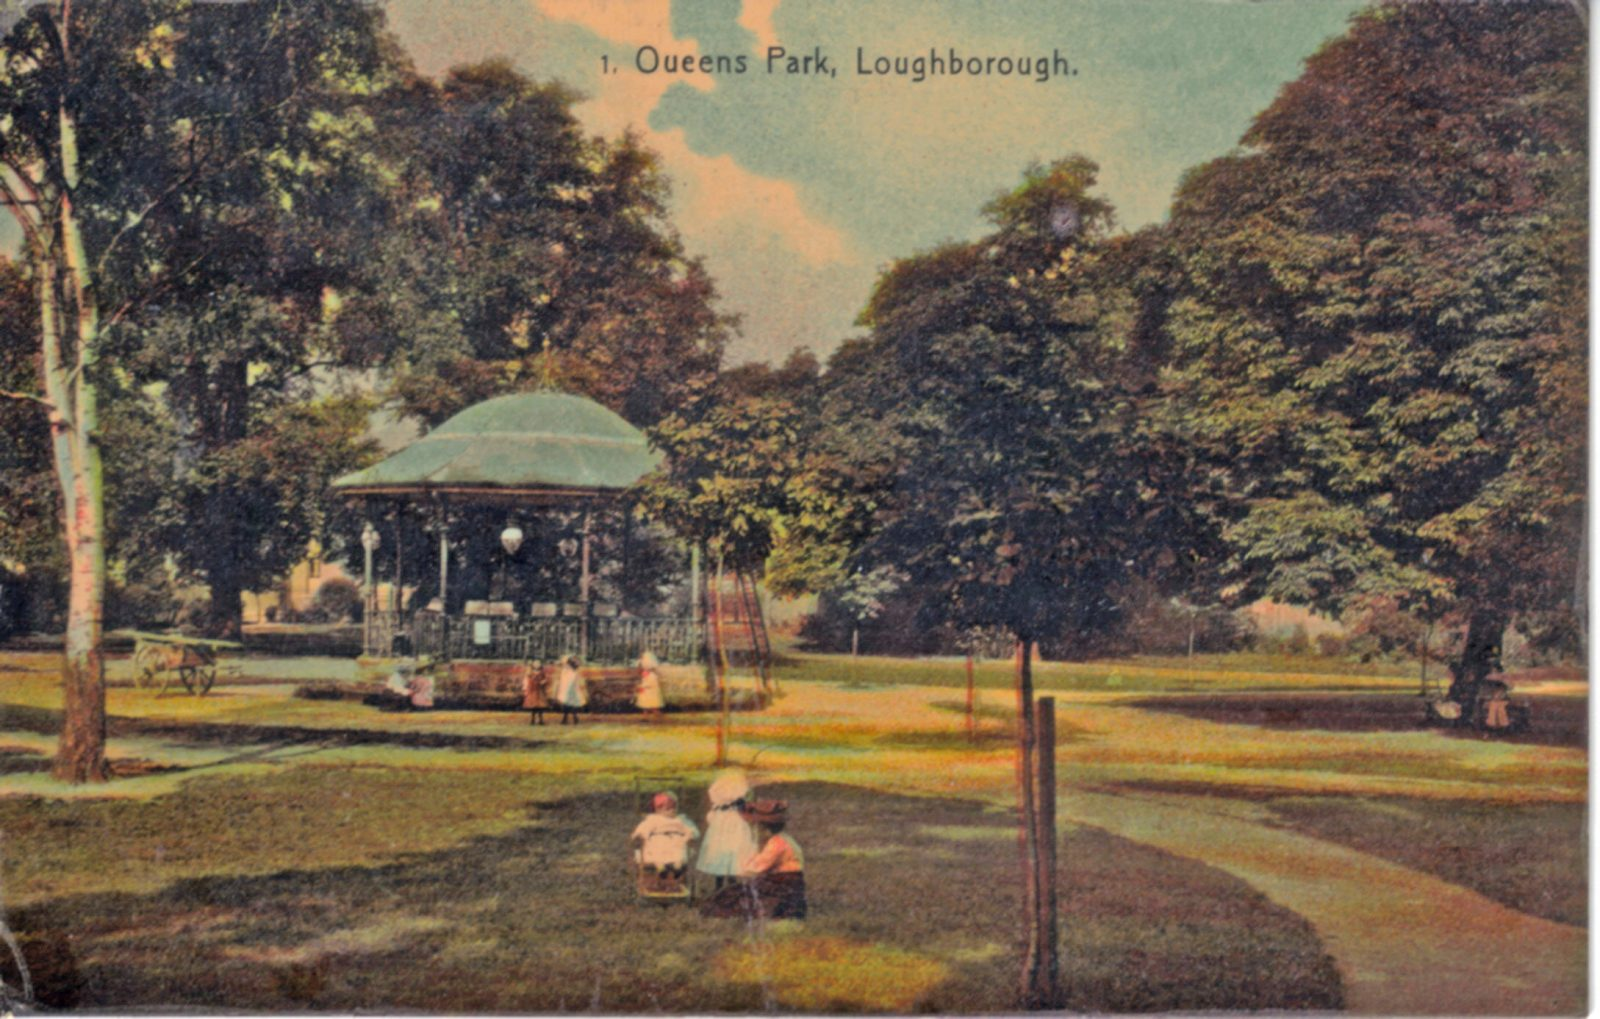 Queens Park, Loughborough. 1921-1940: General view of bandstand. (File:1201)